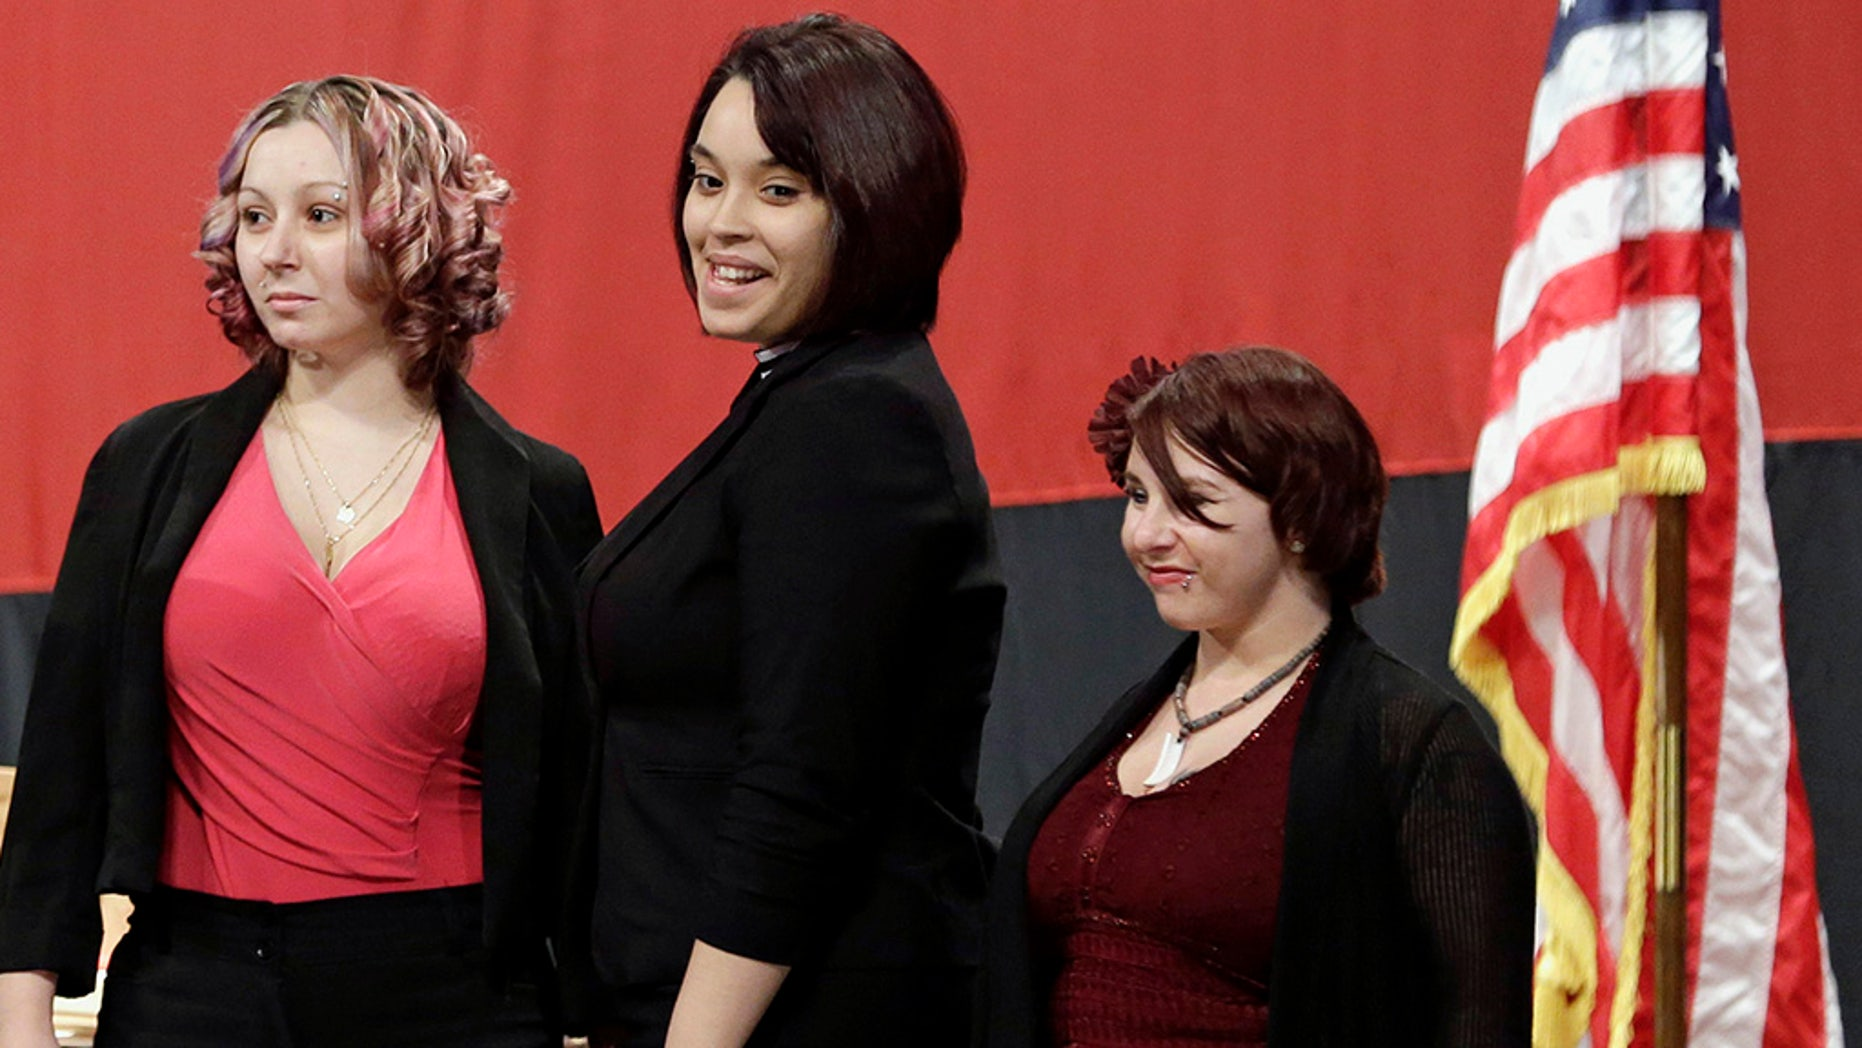 From left, Amanda Berry, Gina DeJesus, and Michelle Knight, who had been snatched off the streets separately between 2002 and 2004 and locked inside Ariel Castro's house where he chained and raped them, investigators later said. (AP Photo/Tony Dejak, File)